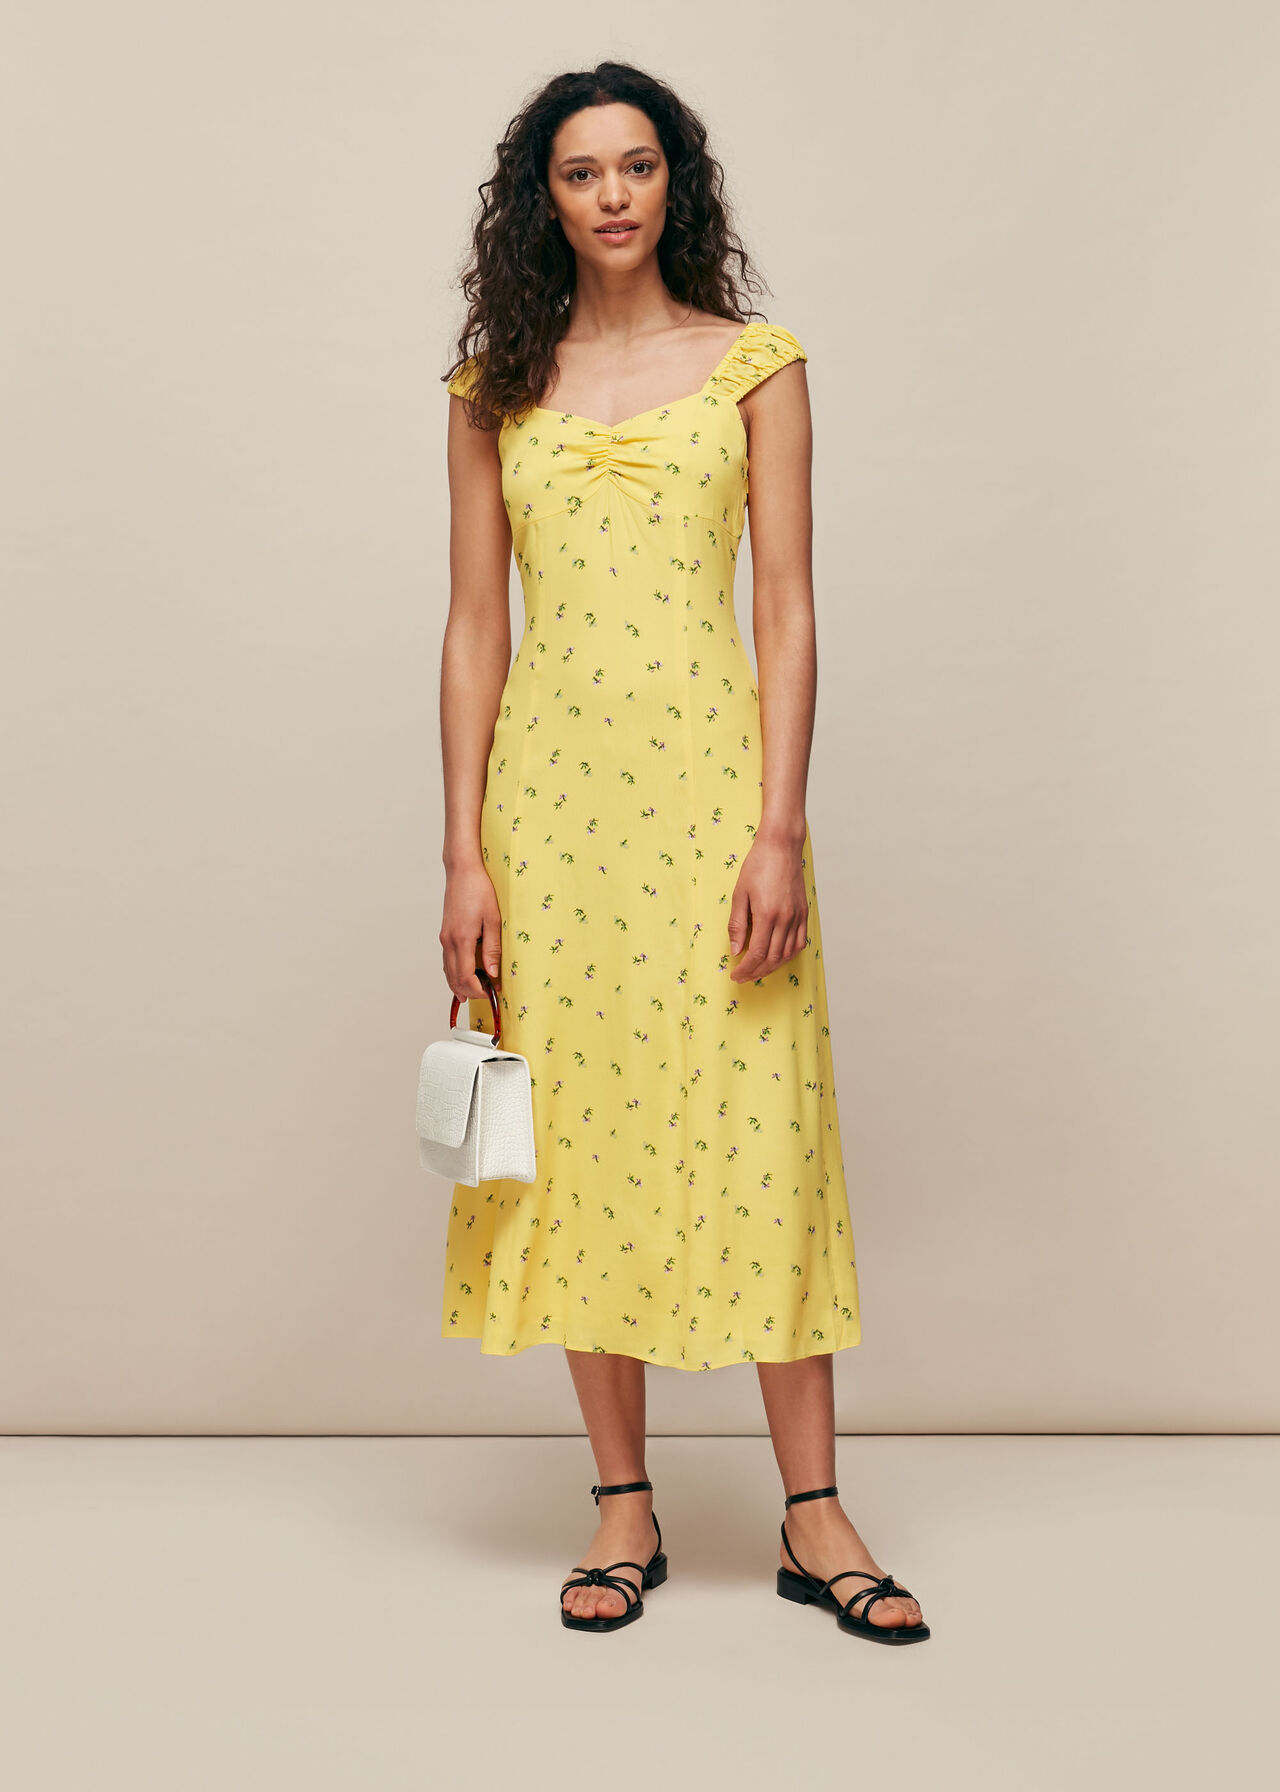 Forget Me Not Print Dress Yellow/Multi